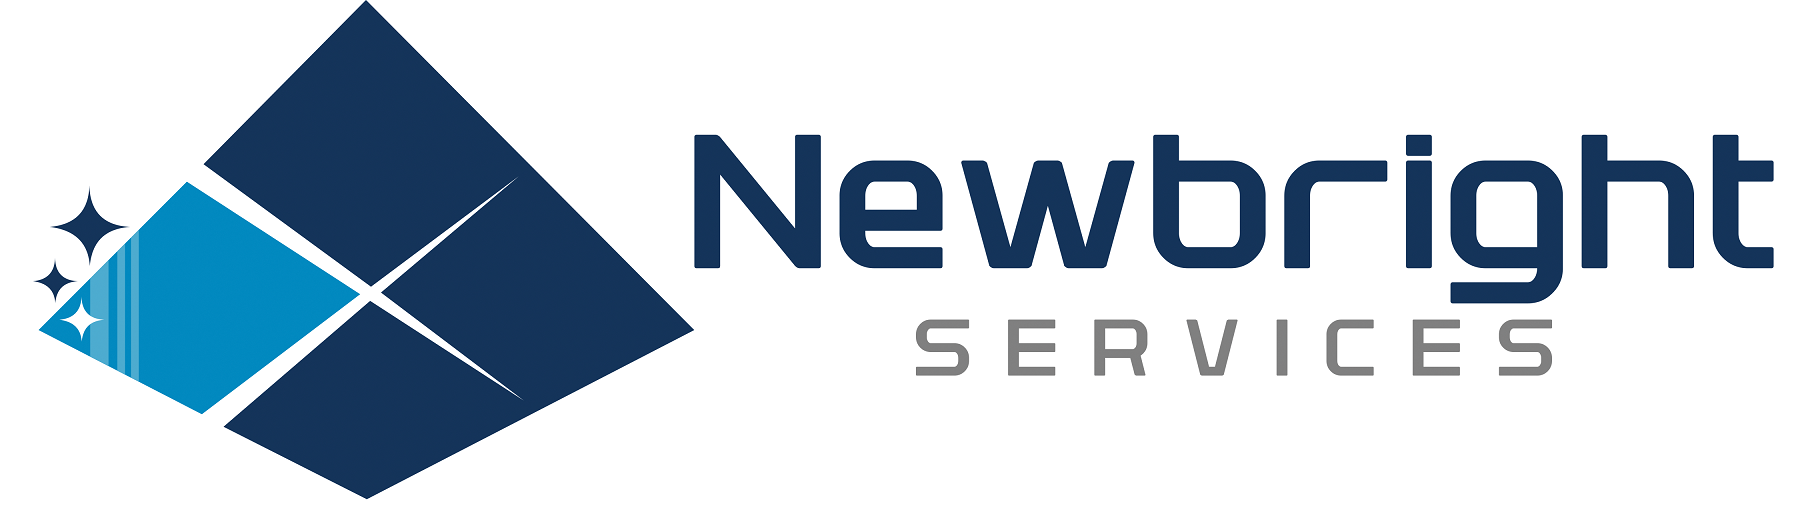 Newbright Services